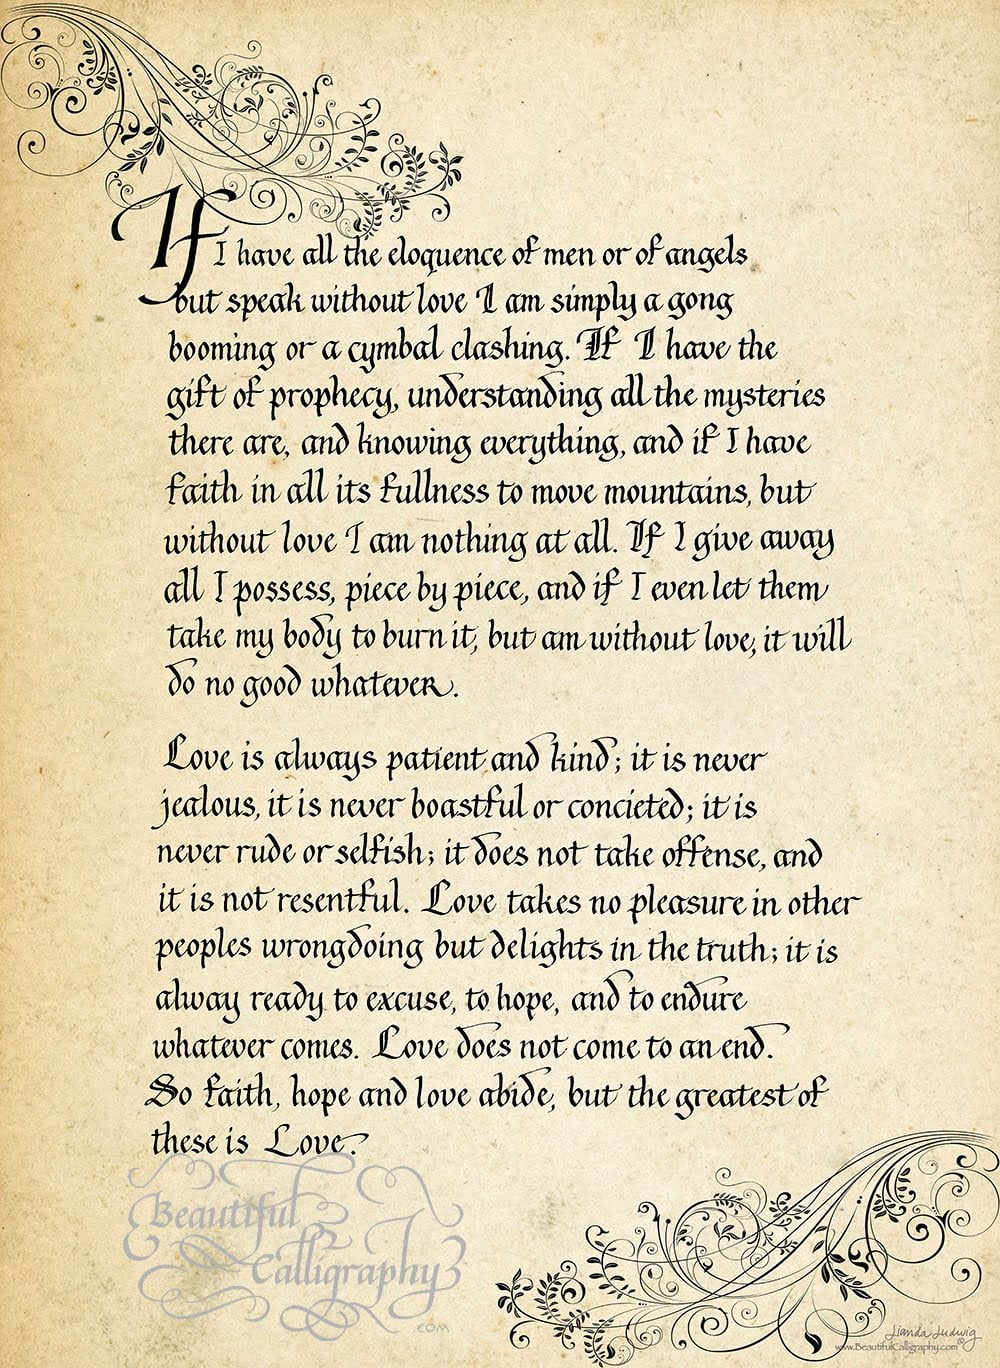 Corinthians in gothicized italic calligraphy love poem